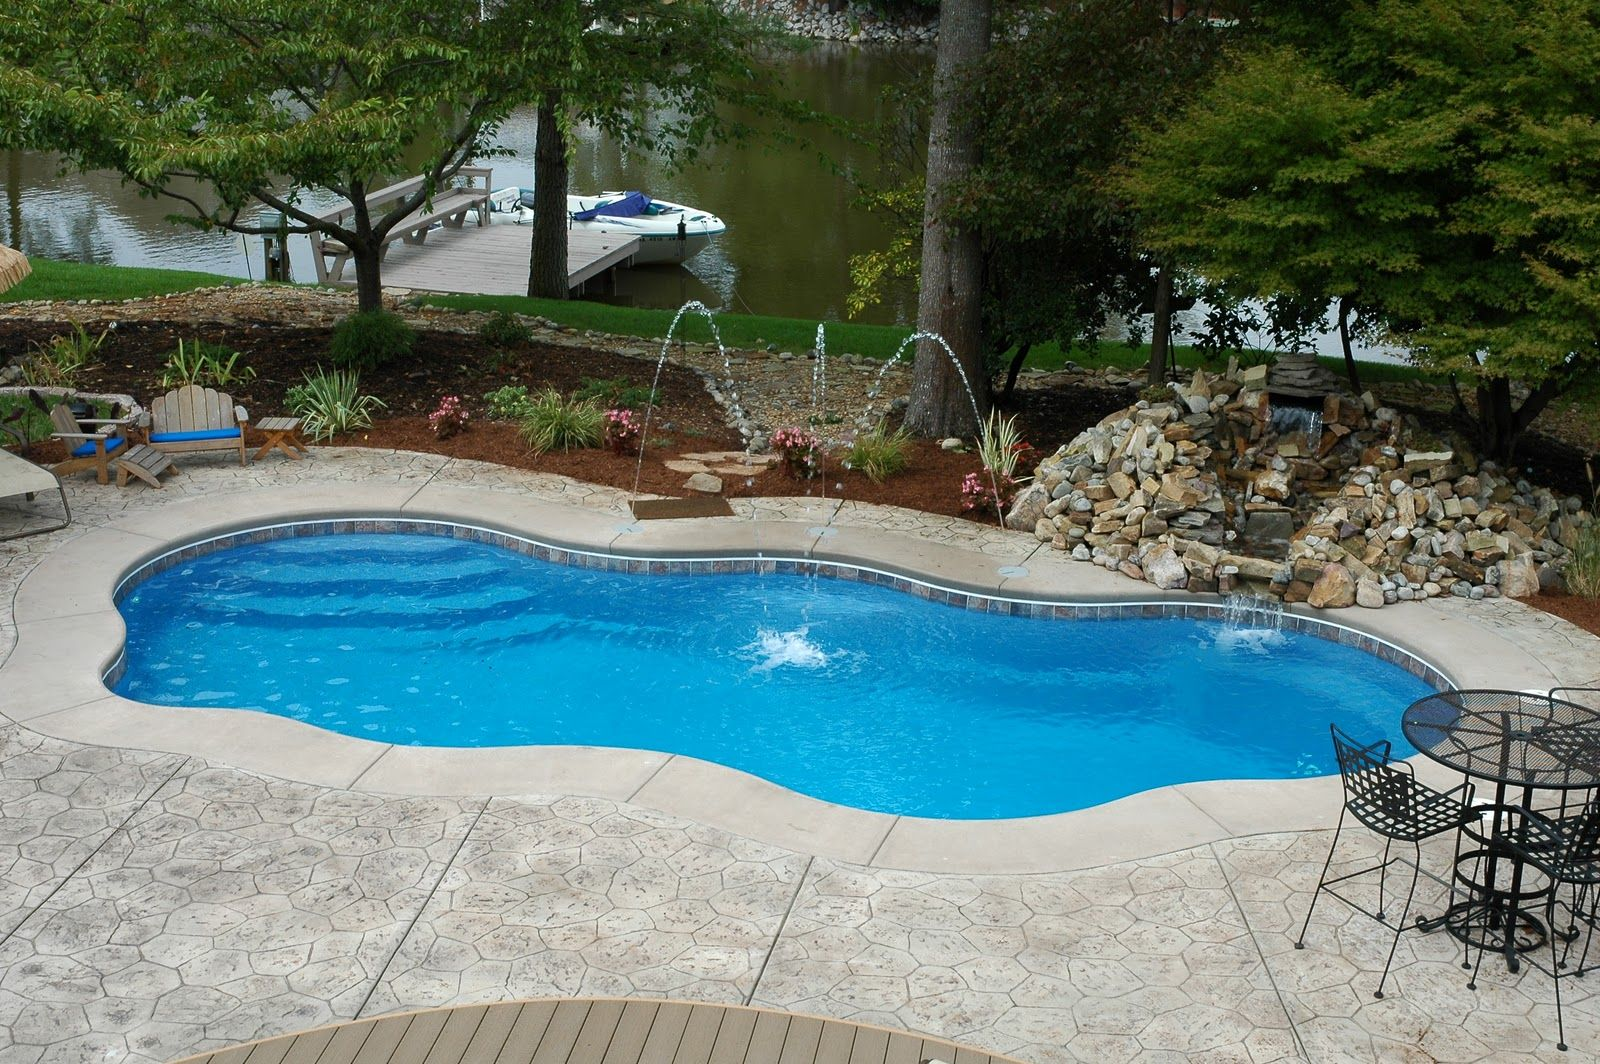 welcome to pool designs. if you like a swimming get a good pool ...